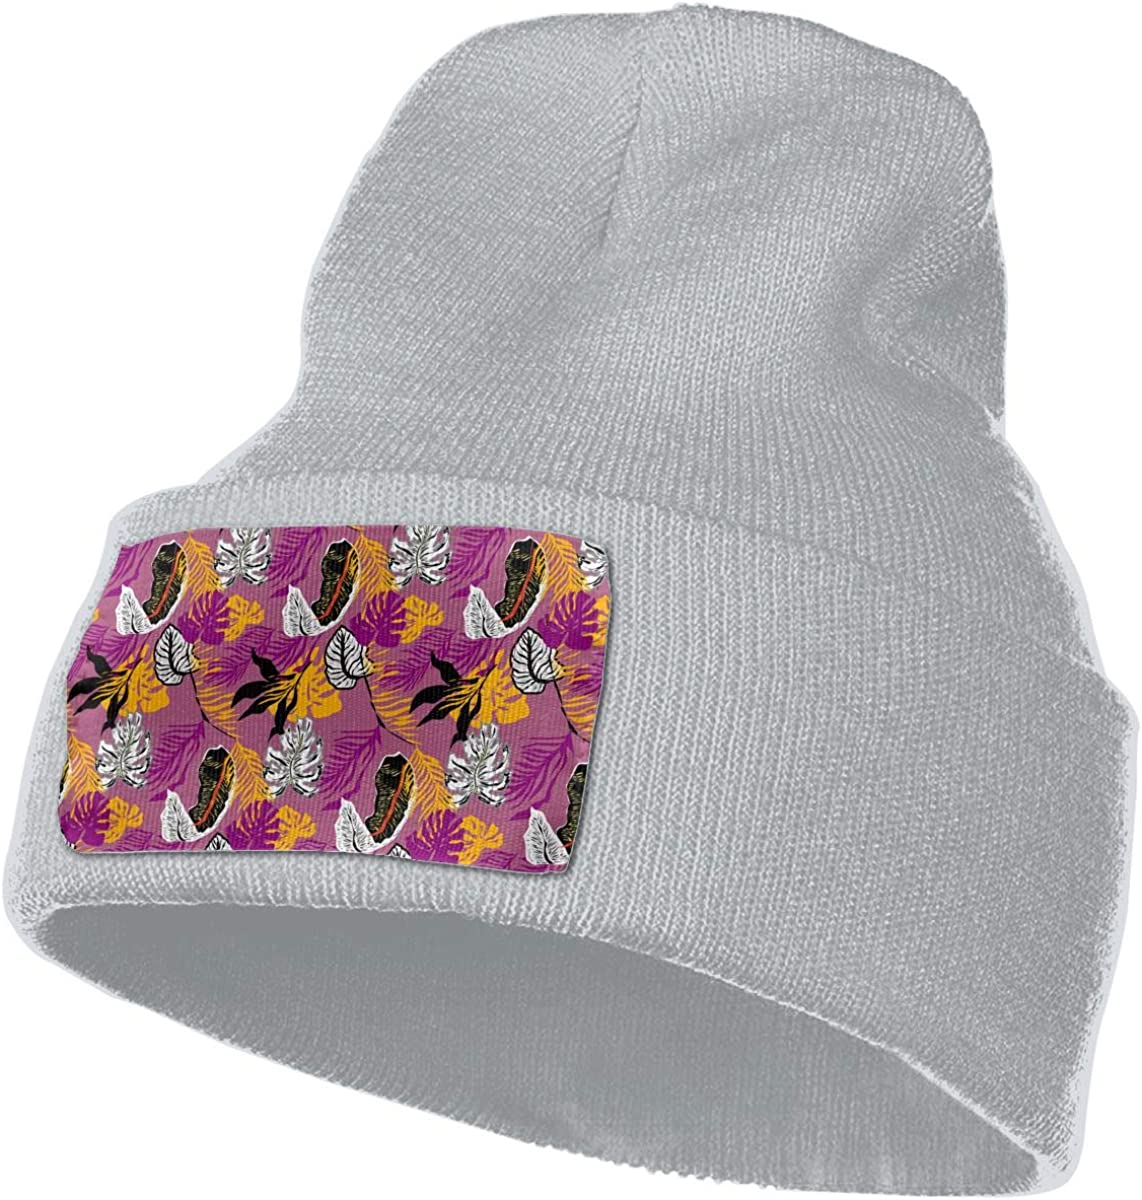 QZqDQ Floral Pattern Texture Unisex Fashion Knitted Hat Luxury Hip-Hop Cap